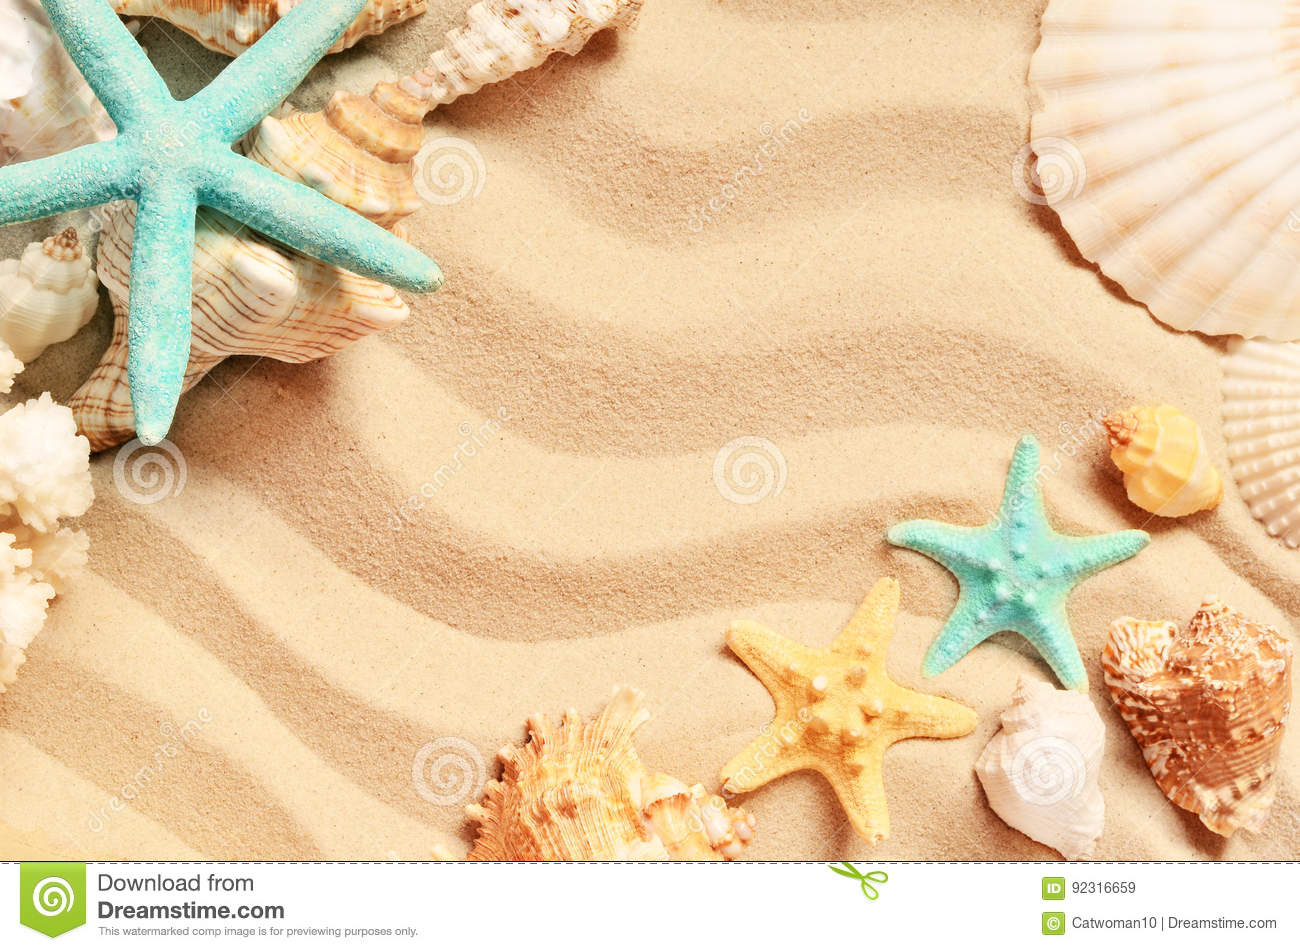 Seashells on a summer beach and sand as background. Sea shells.